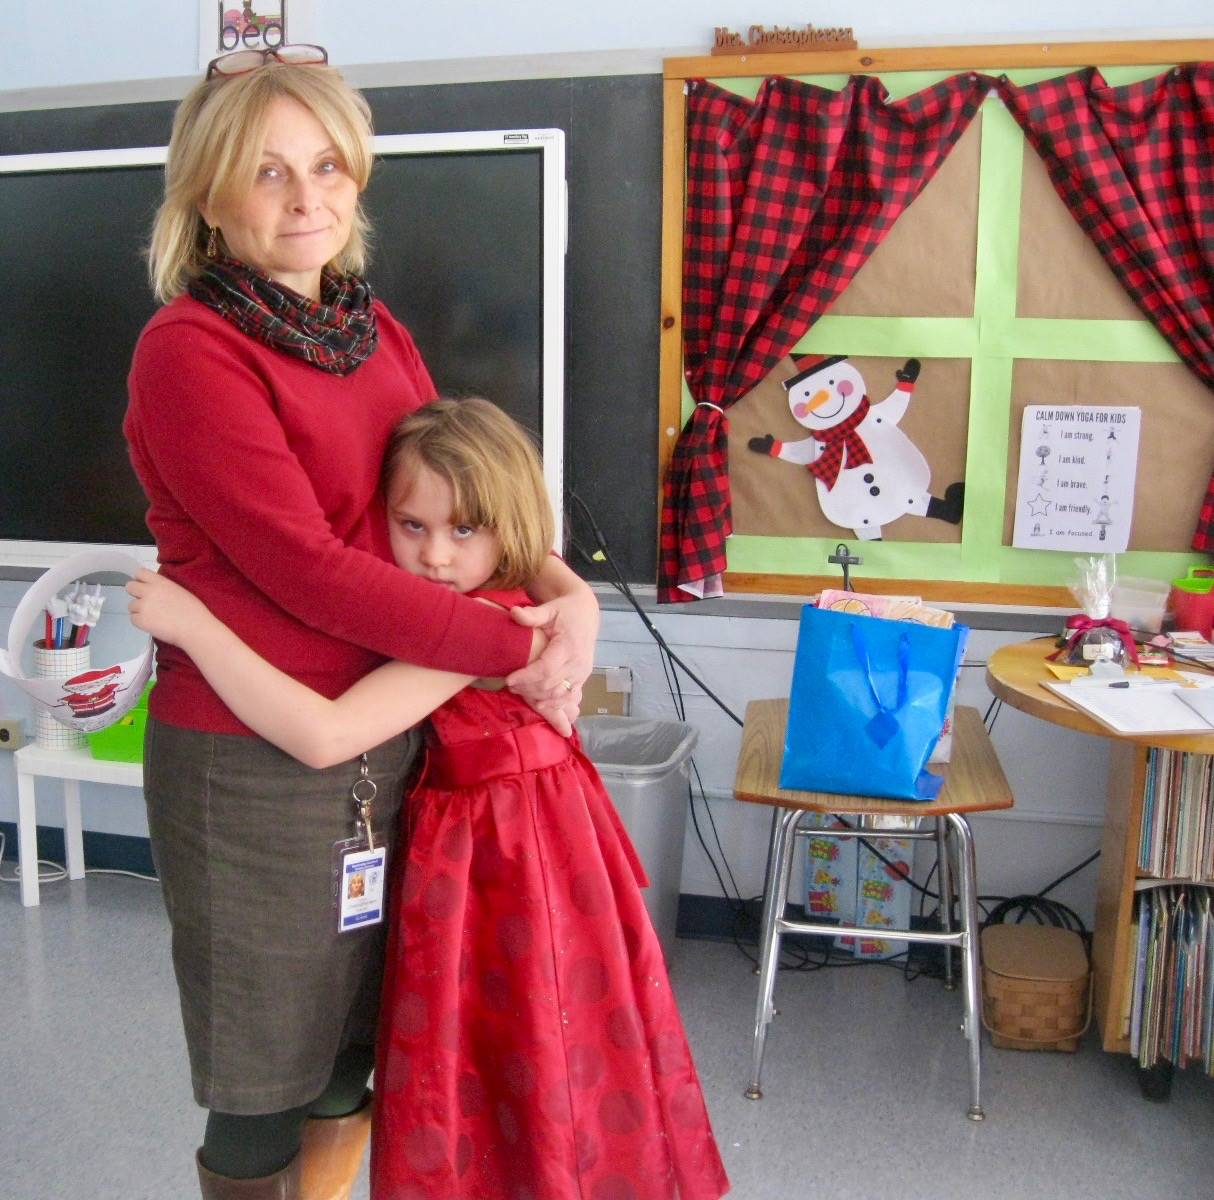 A teacher and student give each other a holiday hug.